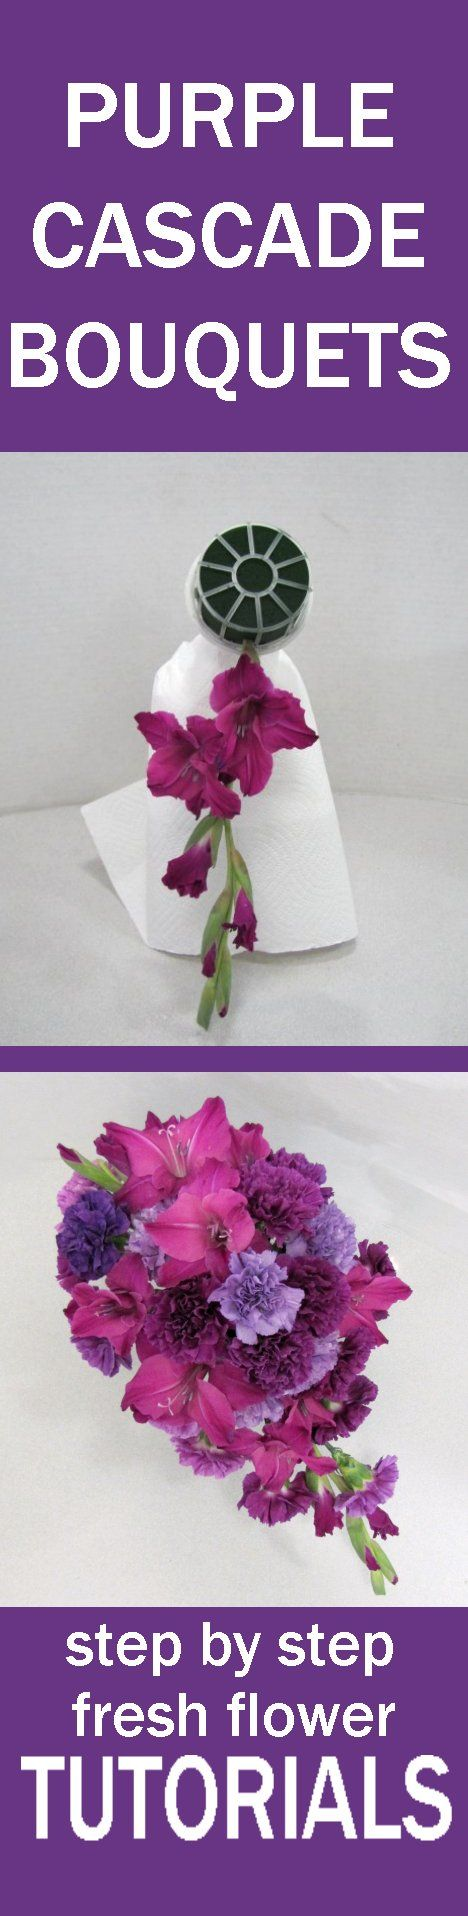 how to make fresh flower bouquet